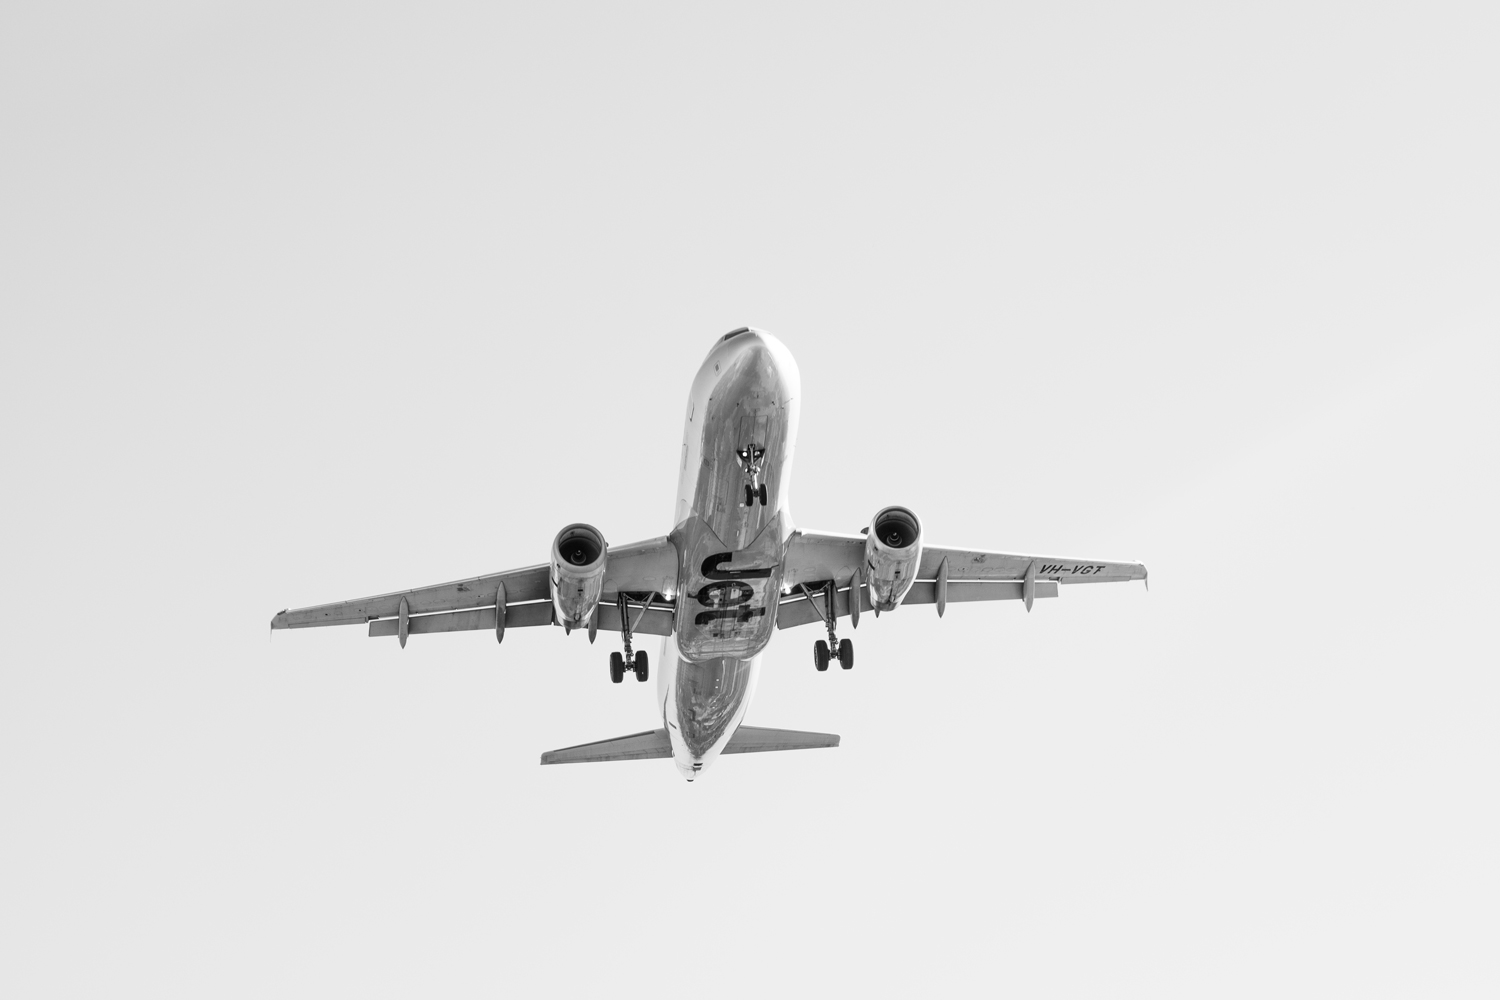 aircraft acting as positive space